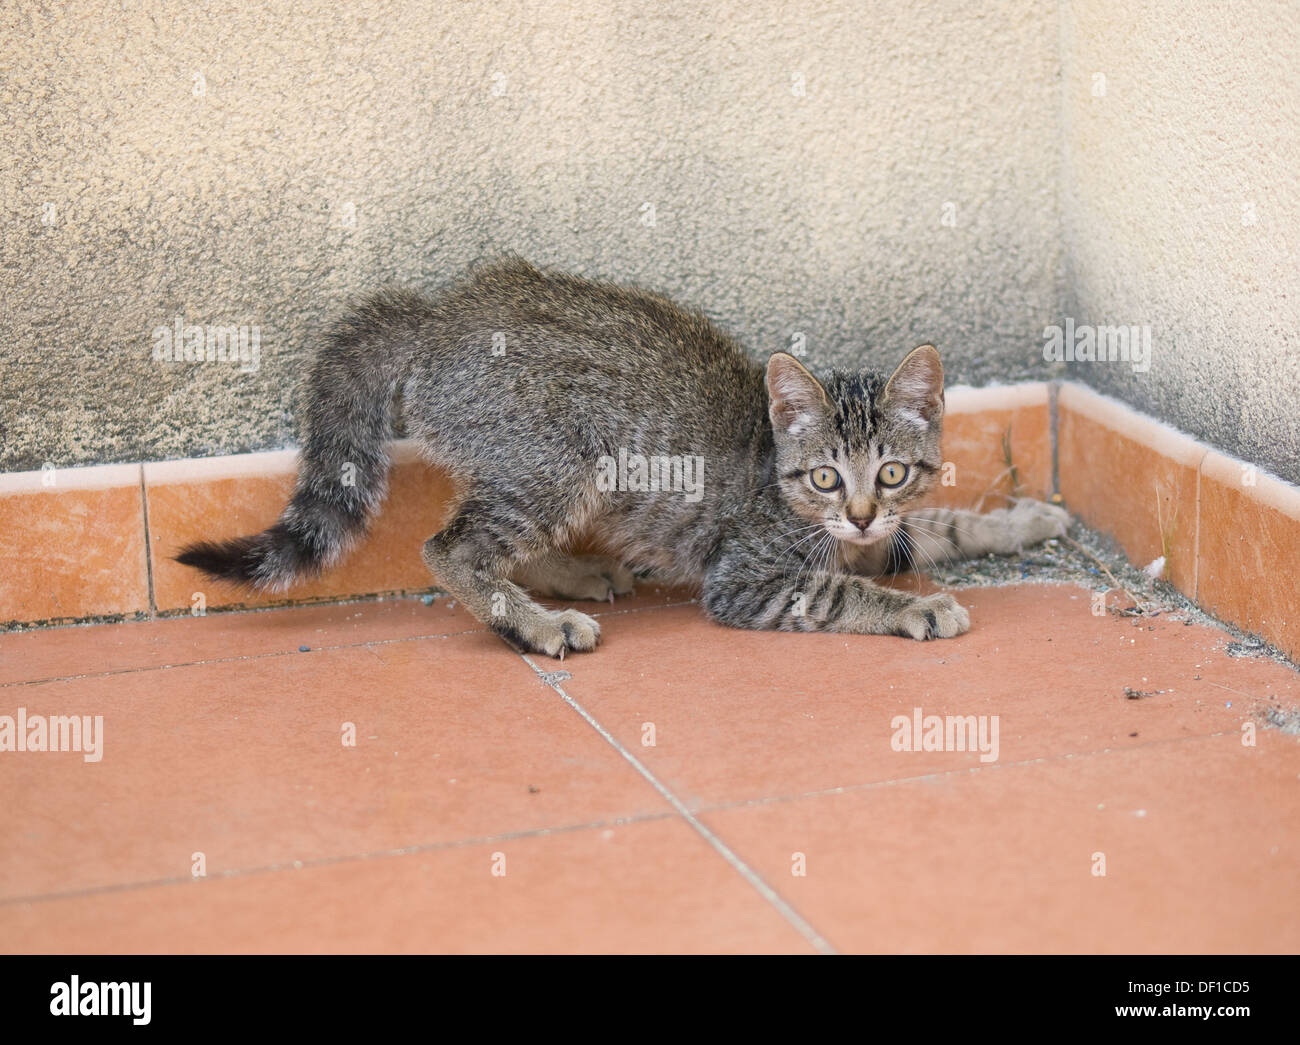 Small kitten on alert. Kitten is playing at being a hunter. - Stock Image